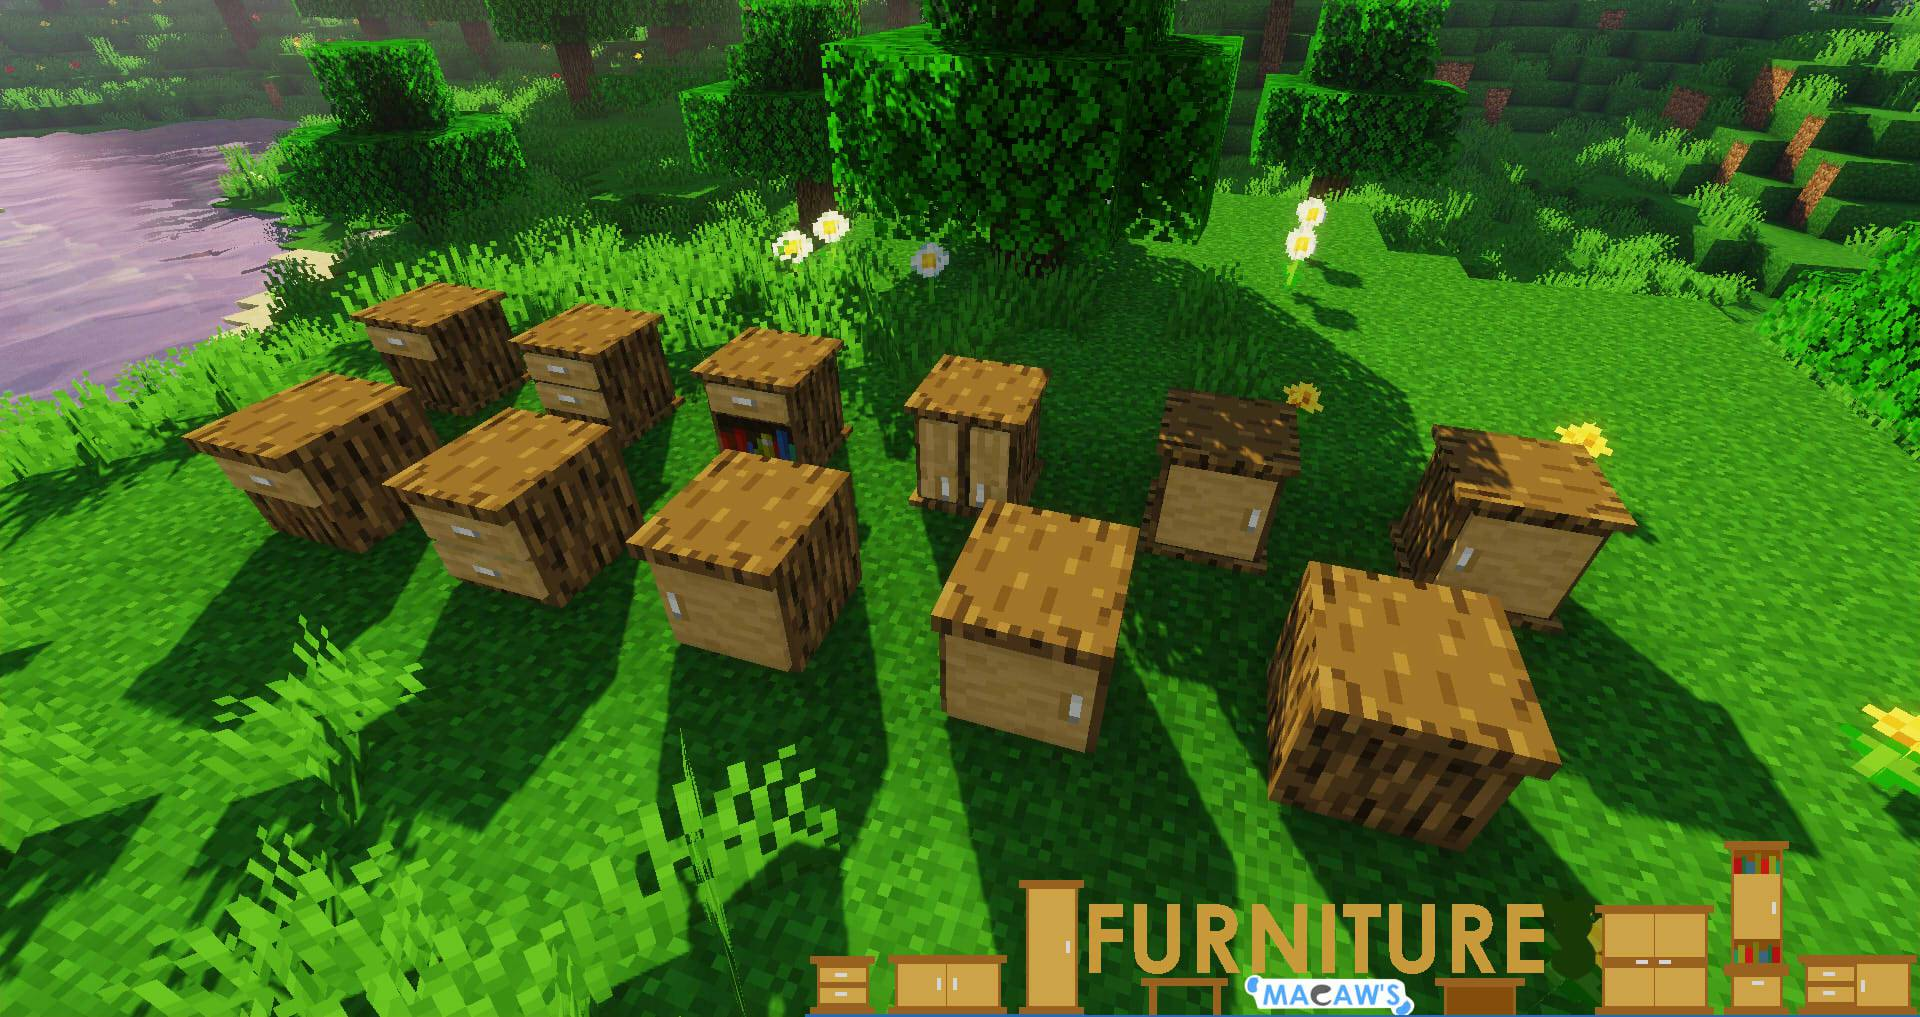 Macaw_s Furniture mod for minecraft 22